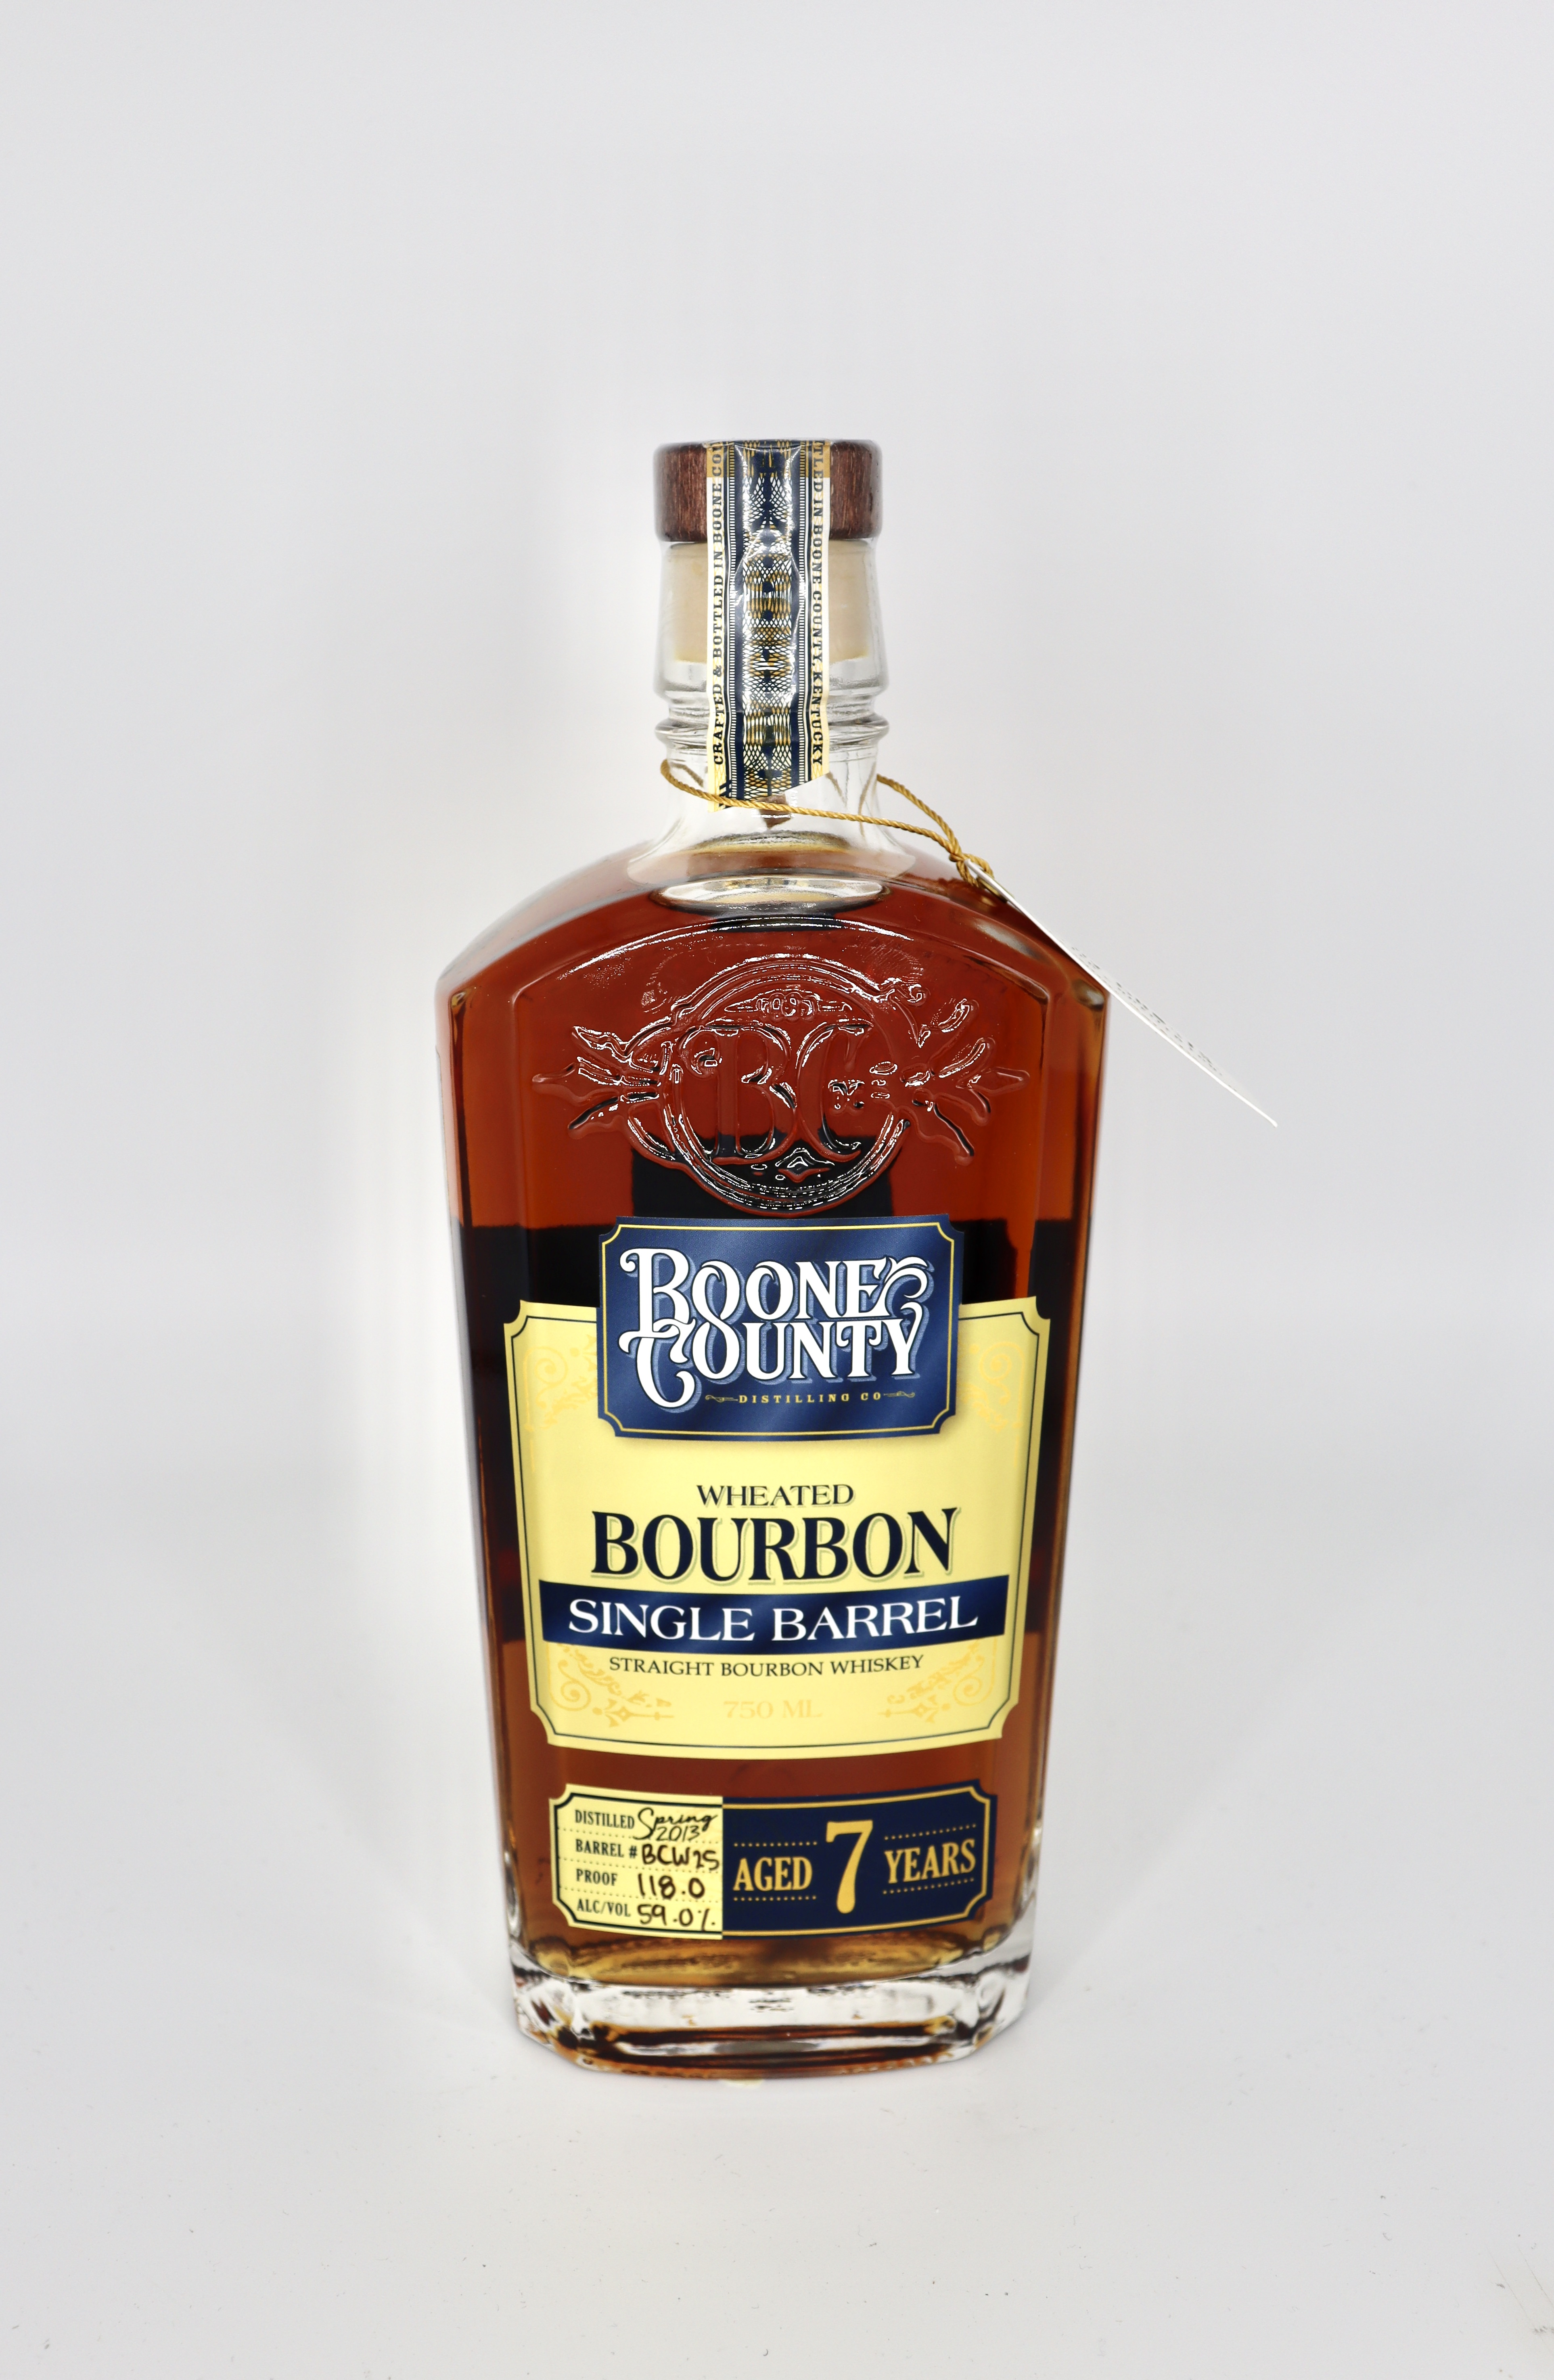 Boone County 7 Year old Single Barrel Wheated Bourbon 121.4 proof